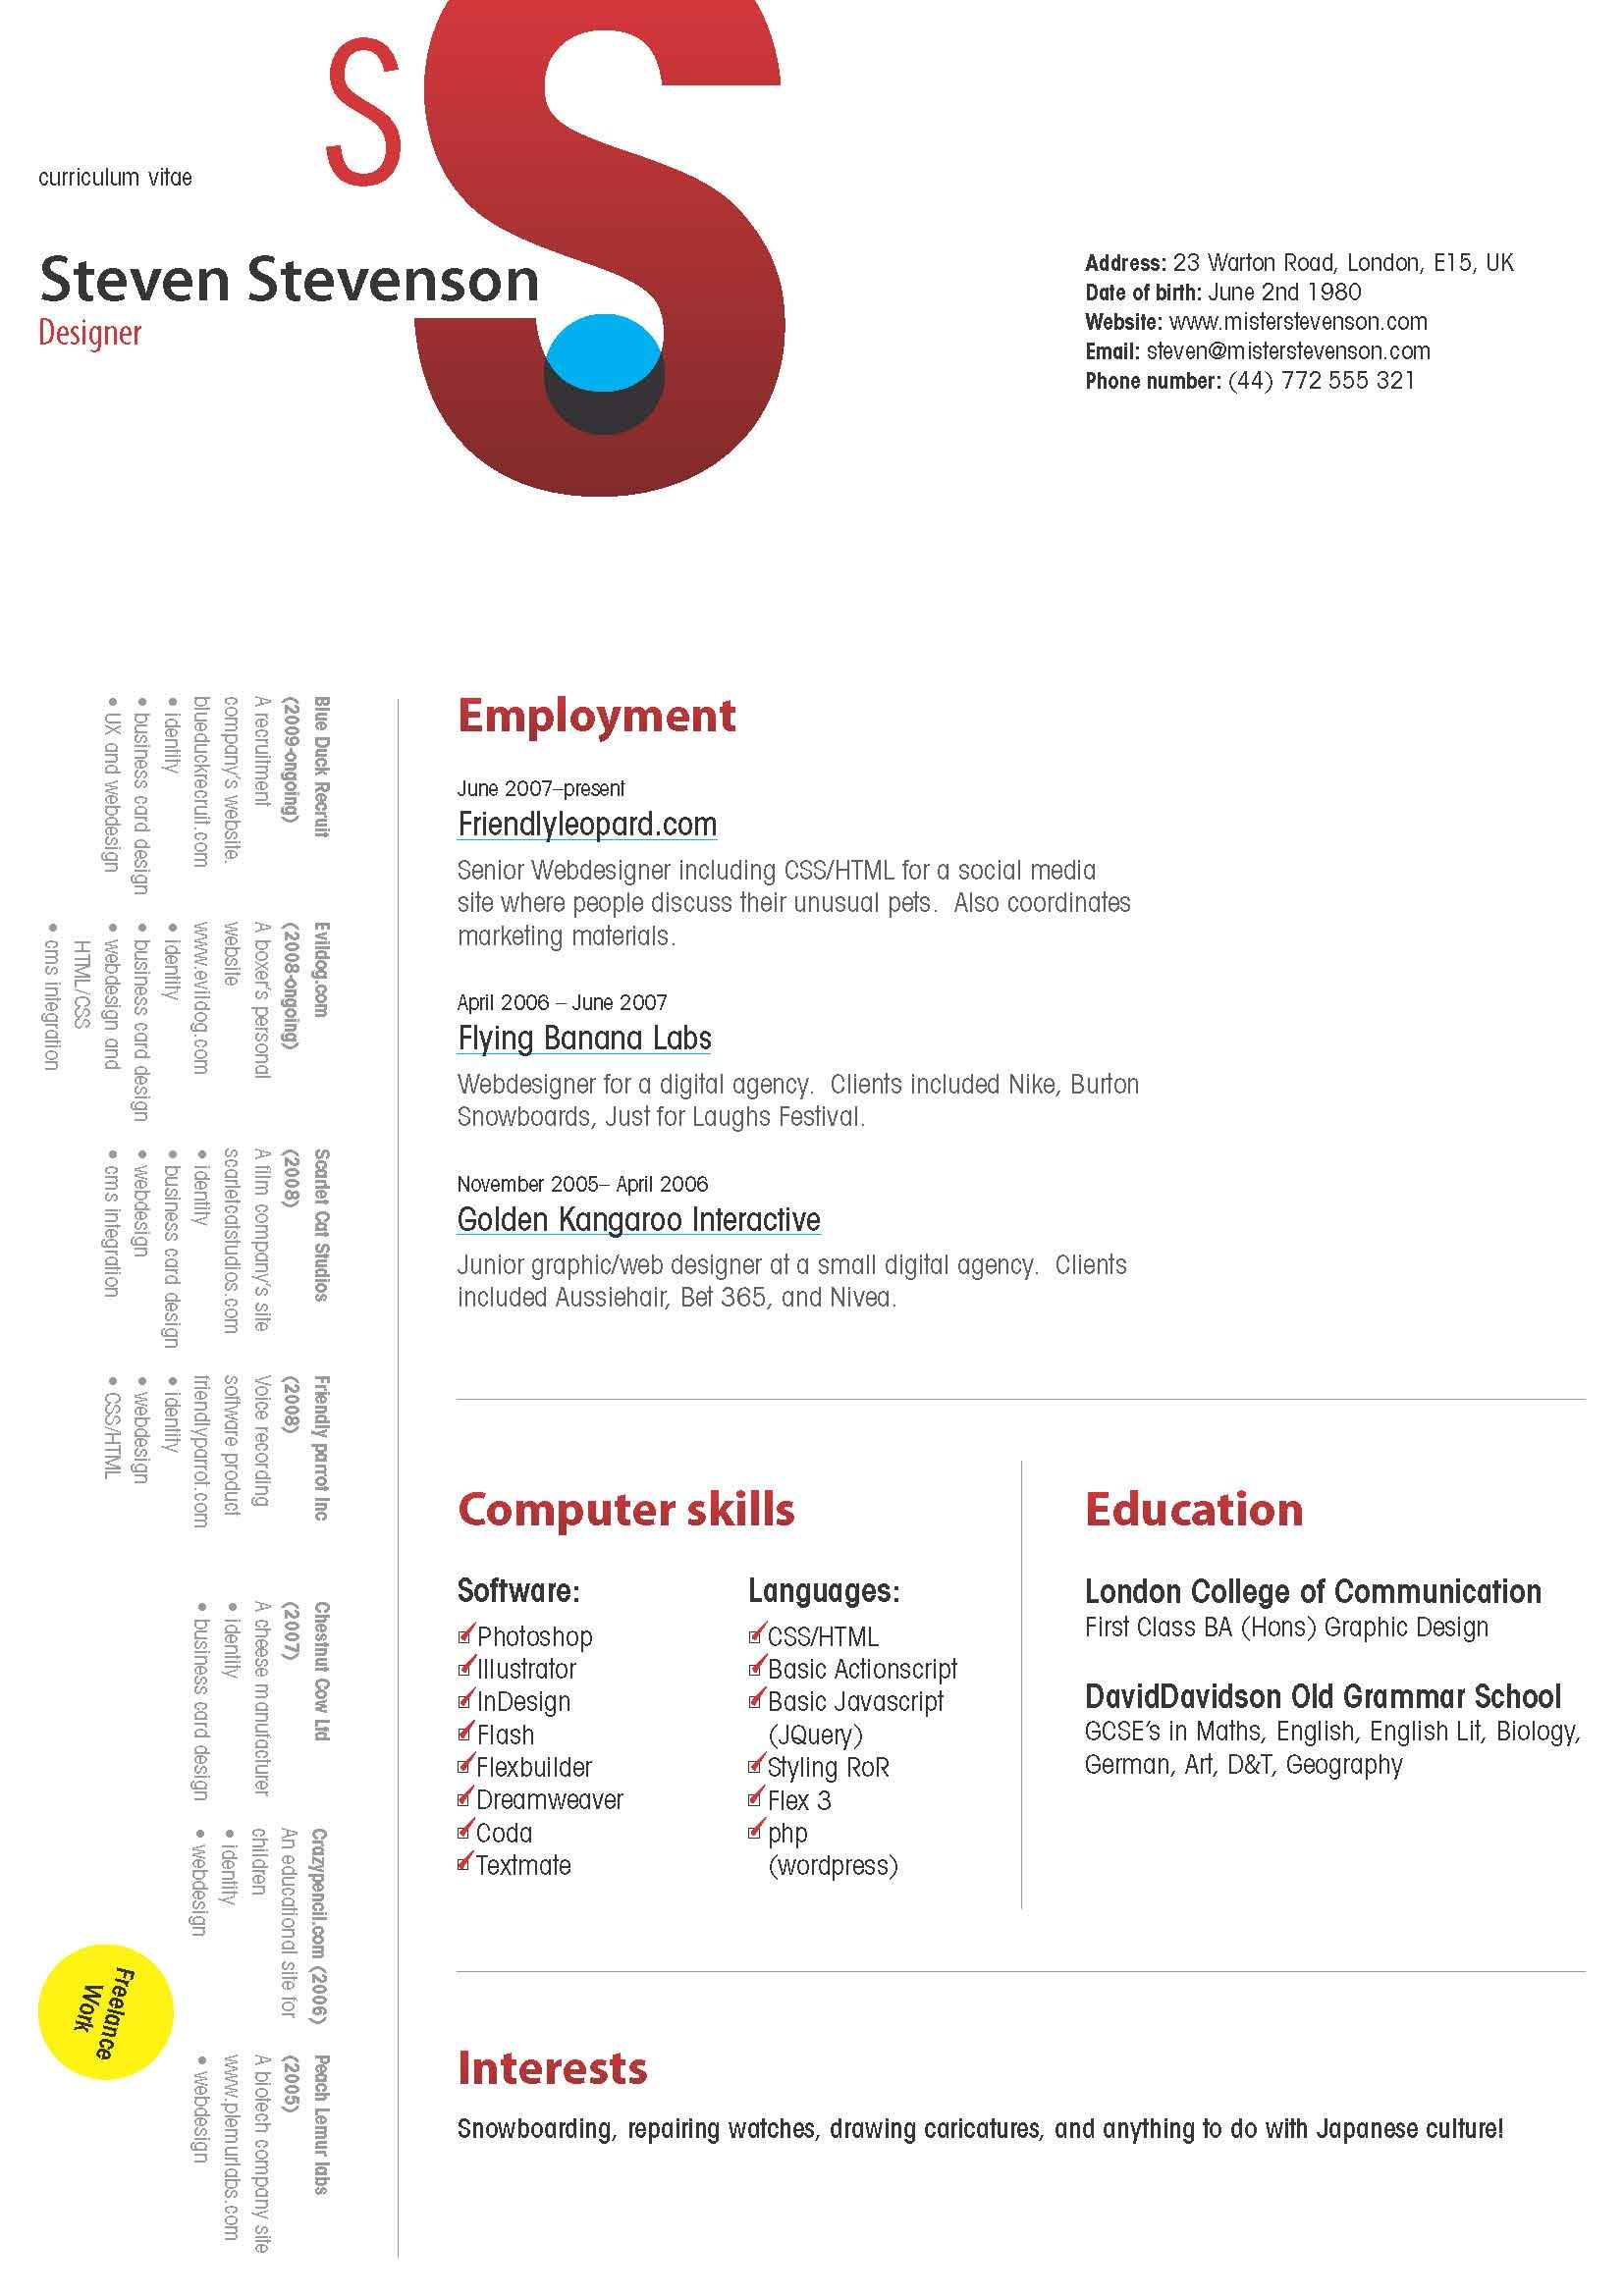 17 best images about resumes infographic resume 17 best images about resumes infographic resume creative resume and cv design